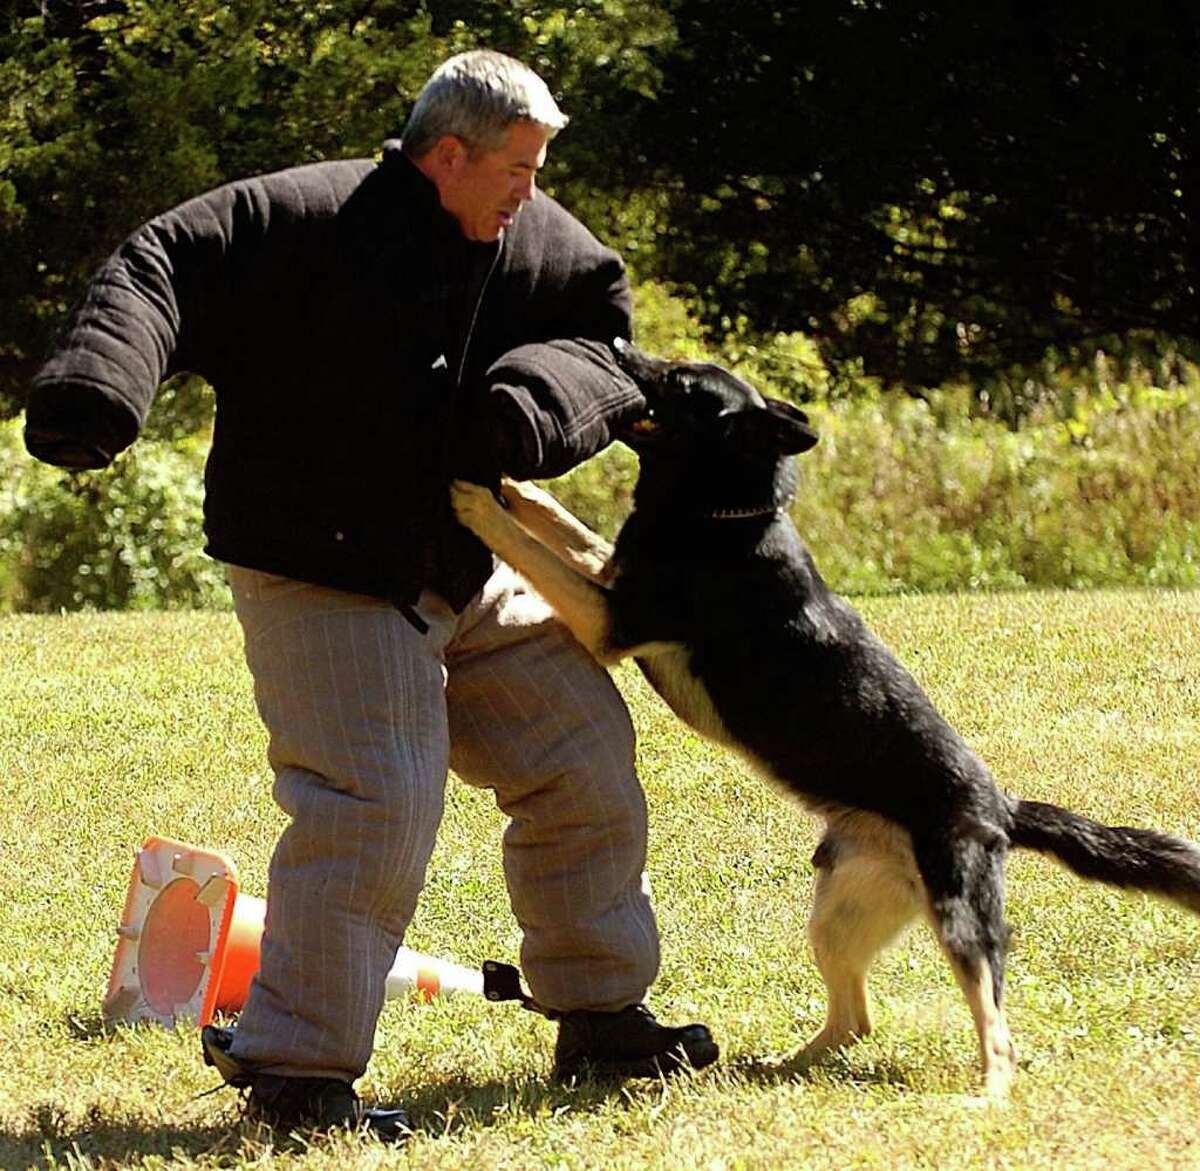 Gregg Scully takes a bite from New Milford police dog Onyx during a competition between CT K-9 handlers held yesterday in New Milford. 2007 file photo